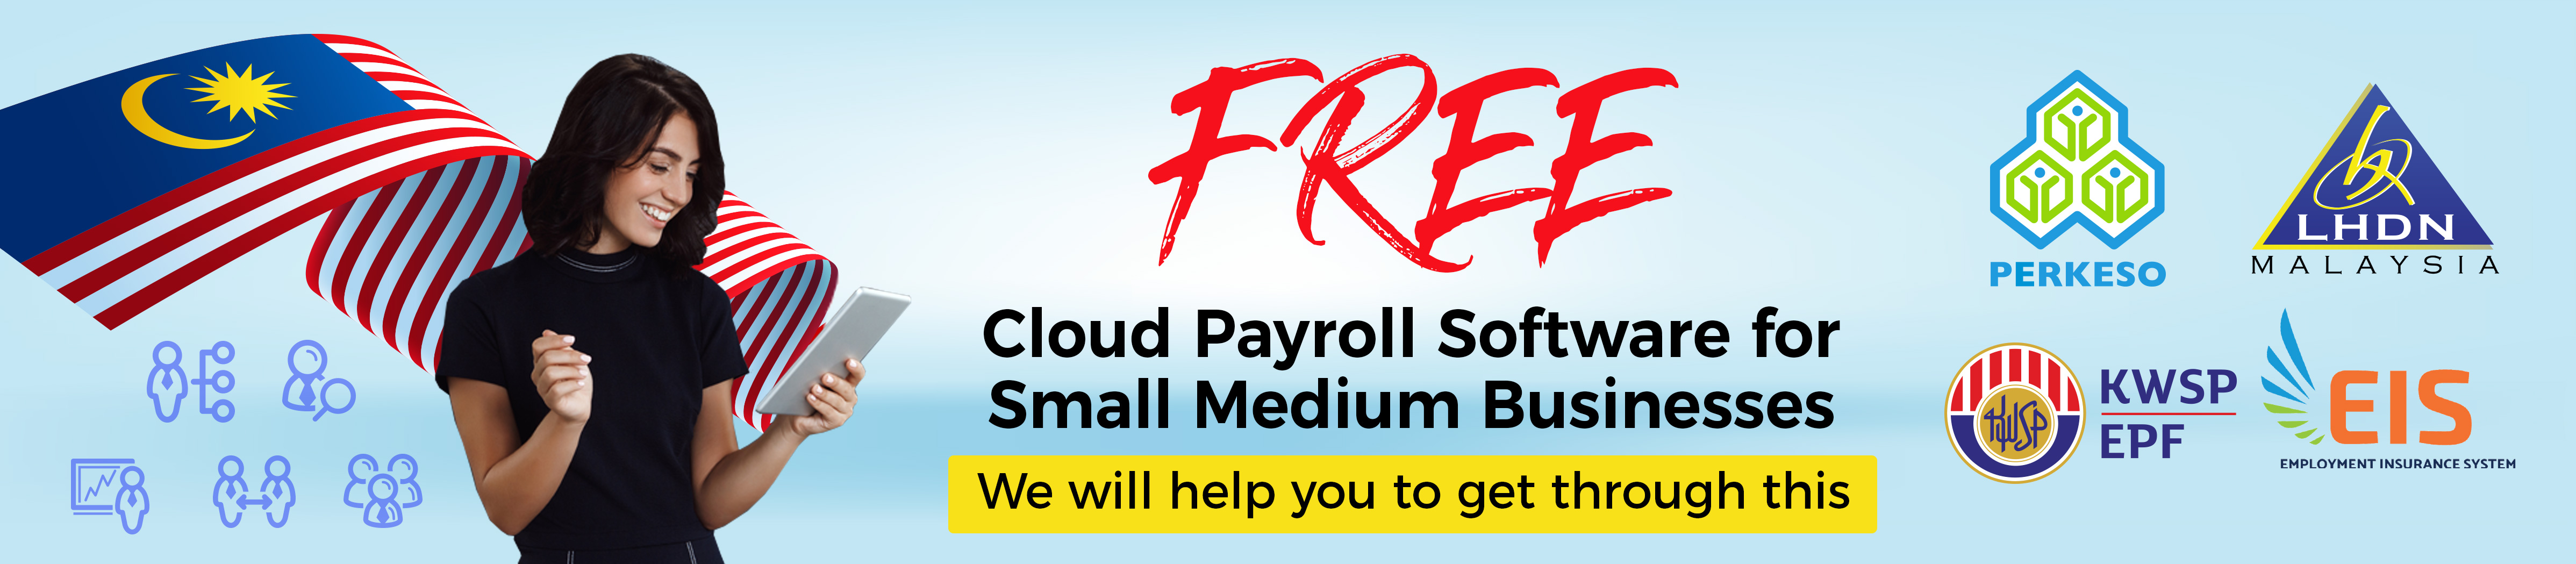 e-leave hrm system free payroll